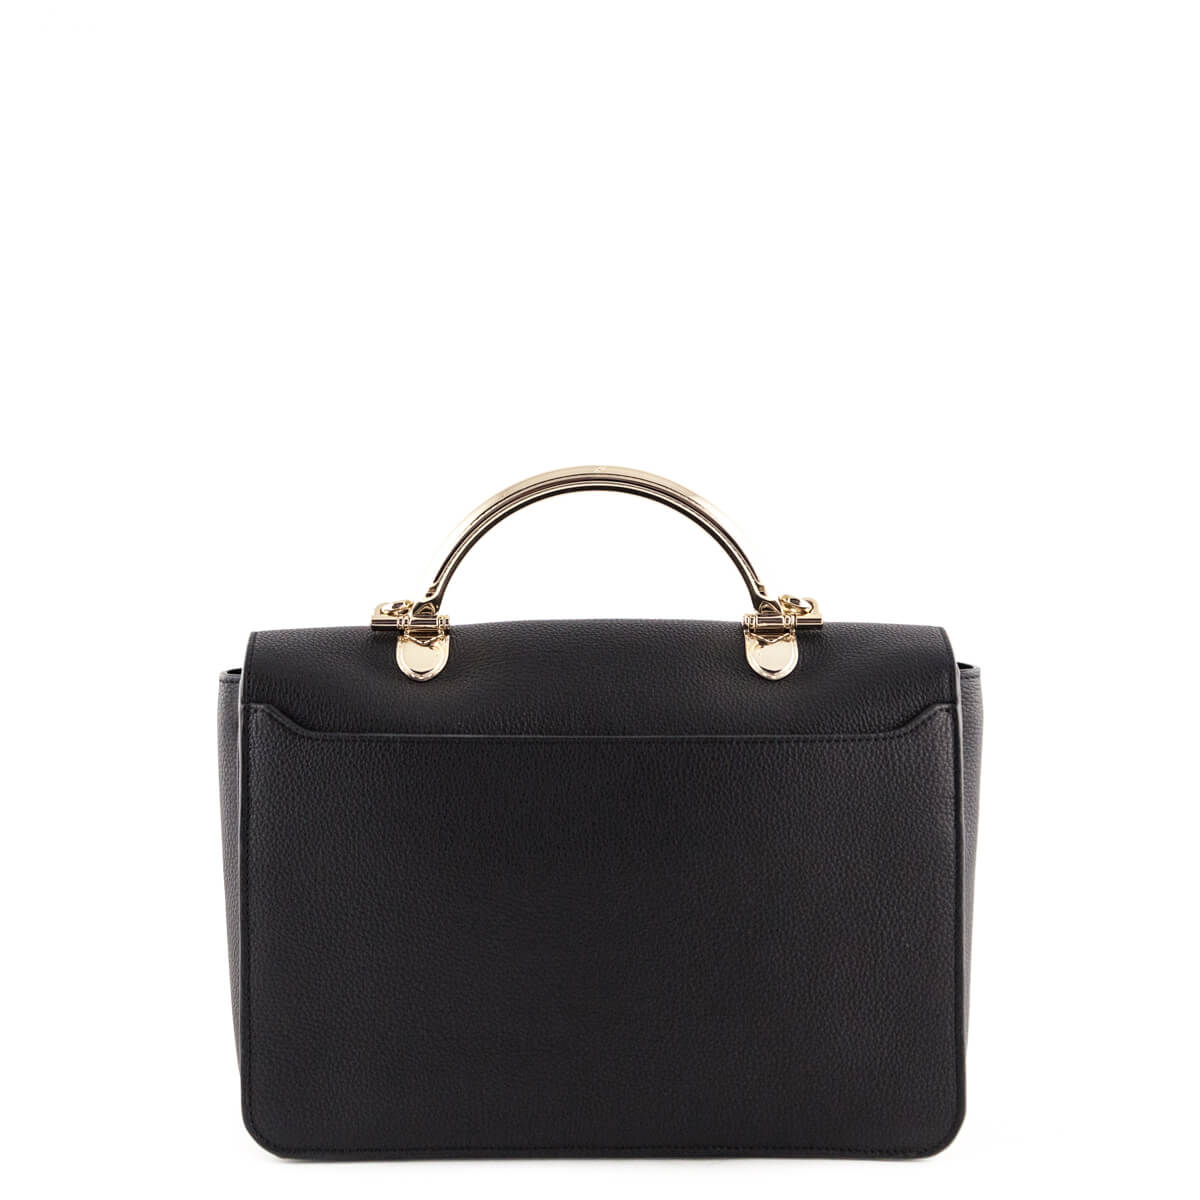 1500a88fa15a ... Mulberry Black Grainy Calfskin Large Bayswater - LOVE that BAG - Preowned  Authentic Designer Handbags ...